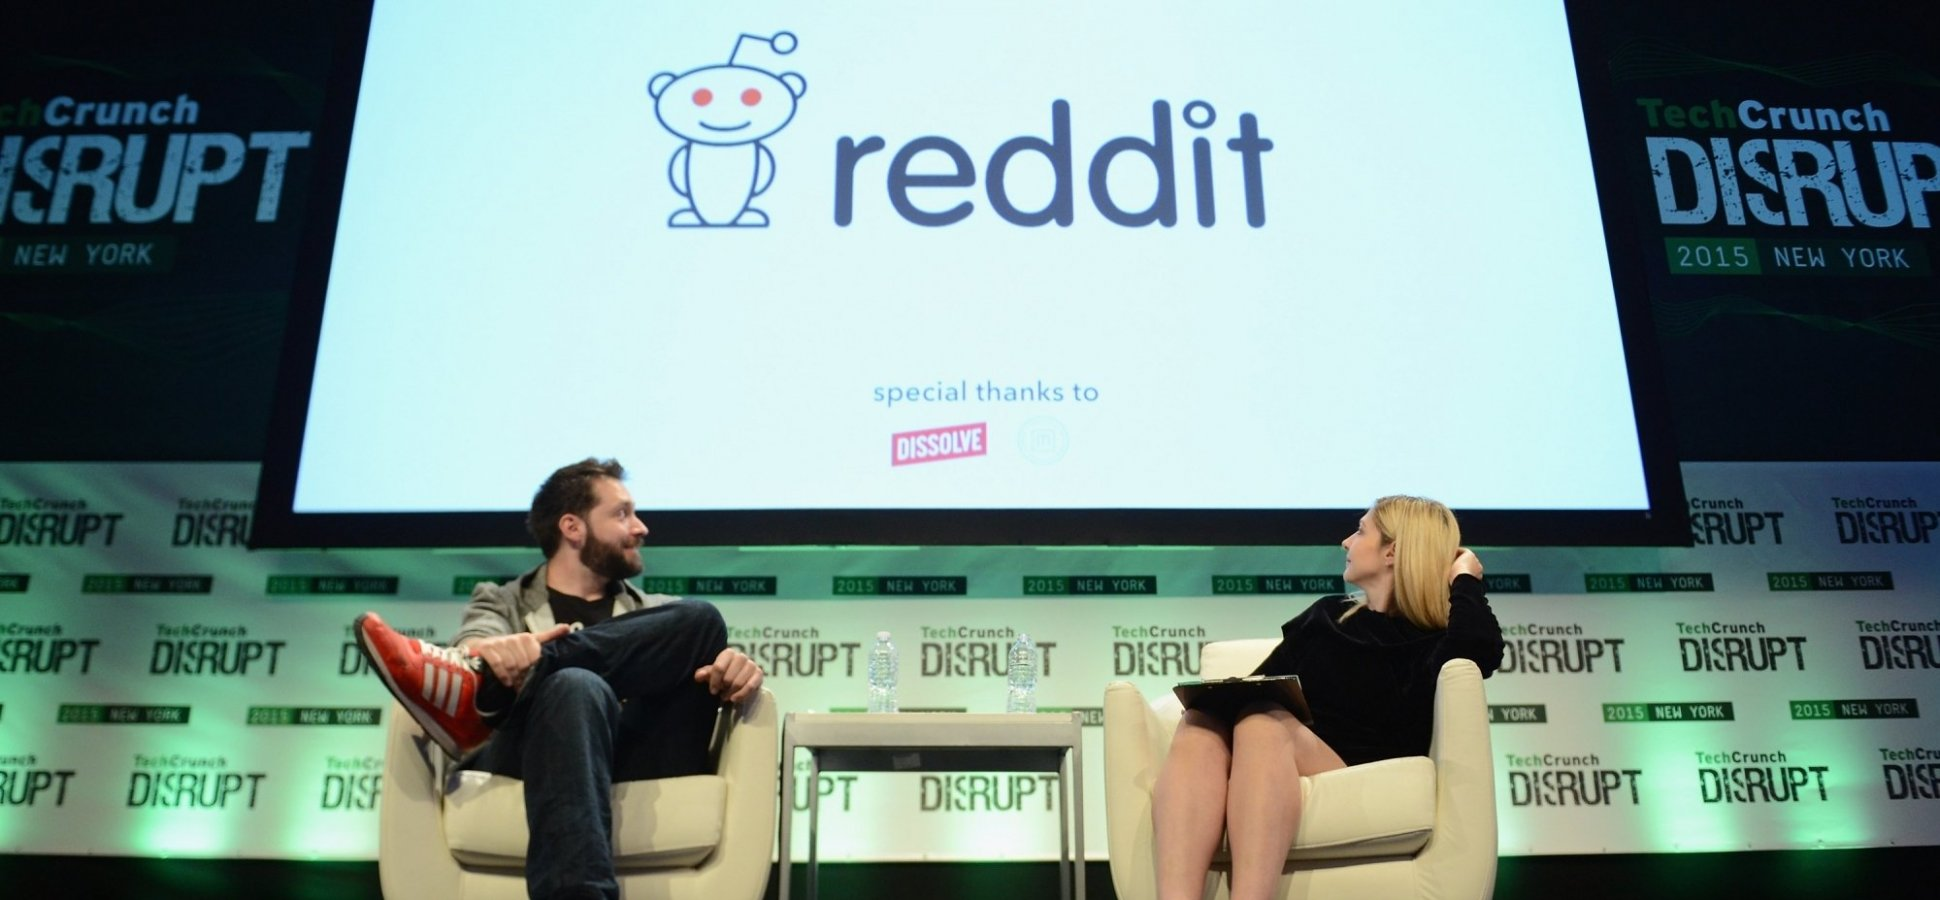 How to Use Reddit to Build Up Your Professional Credibility